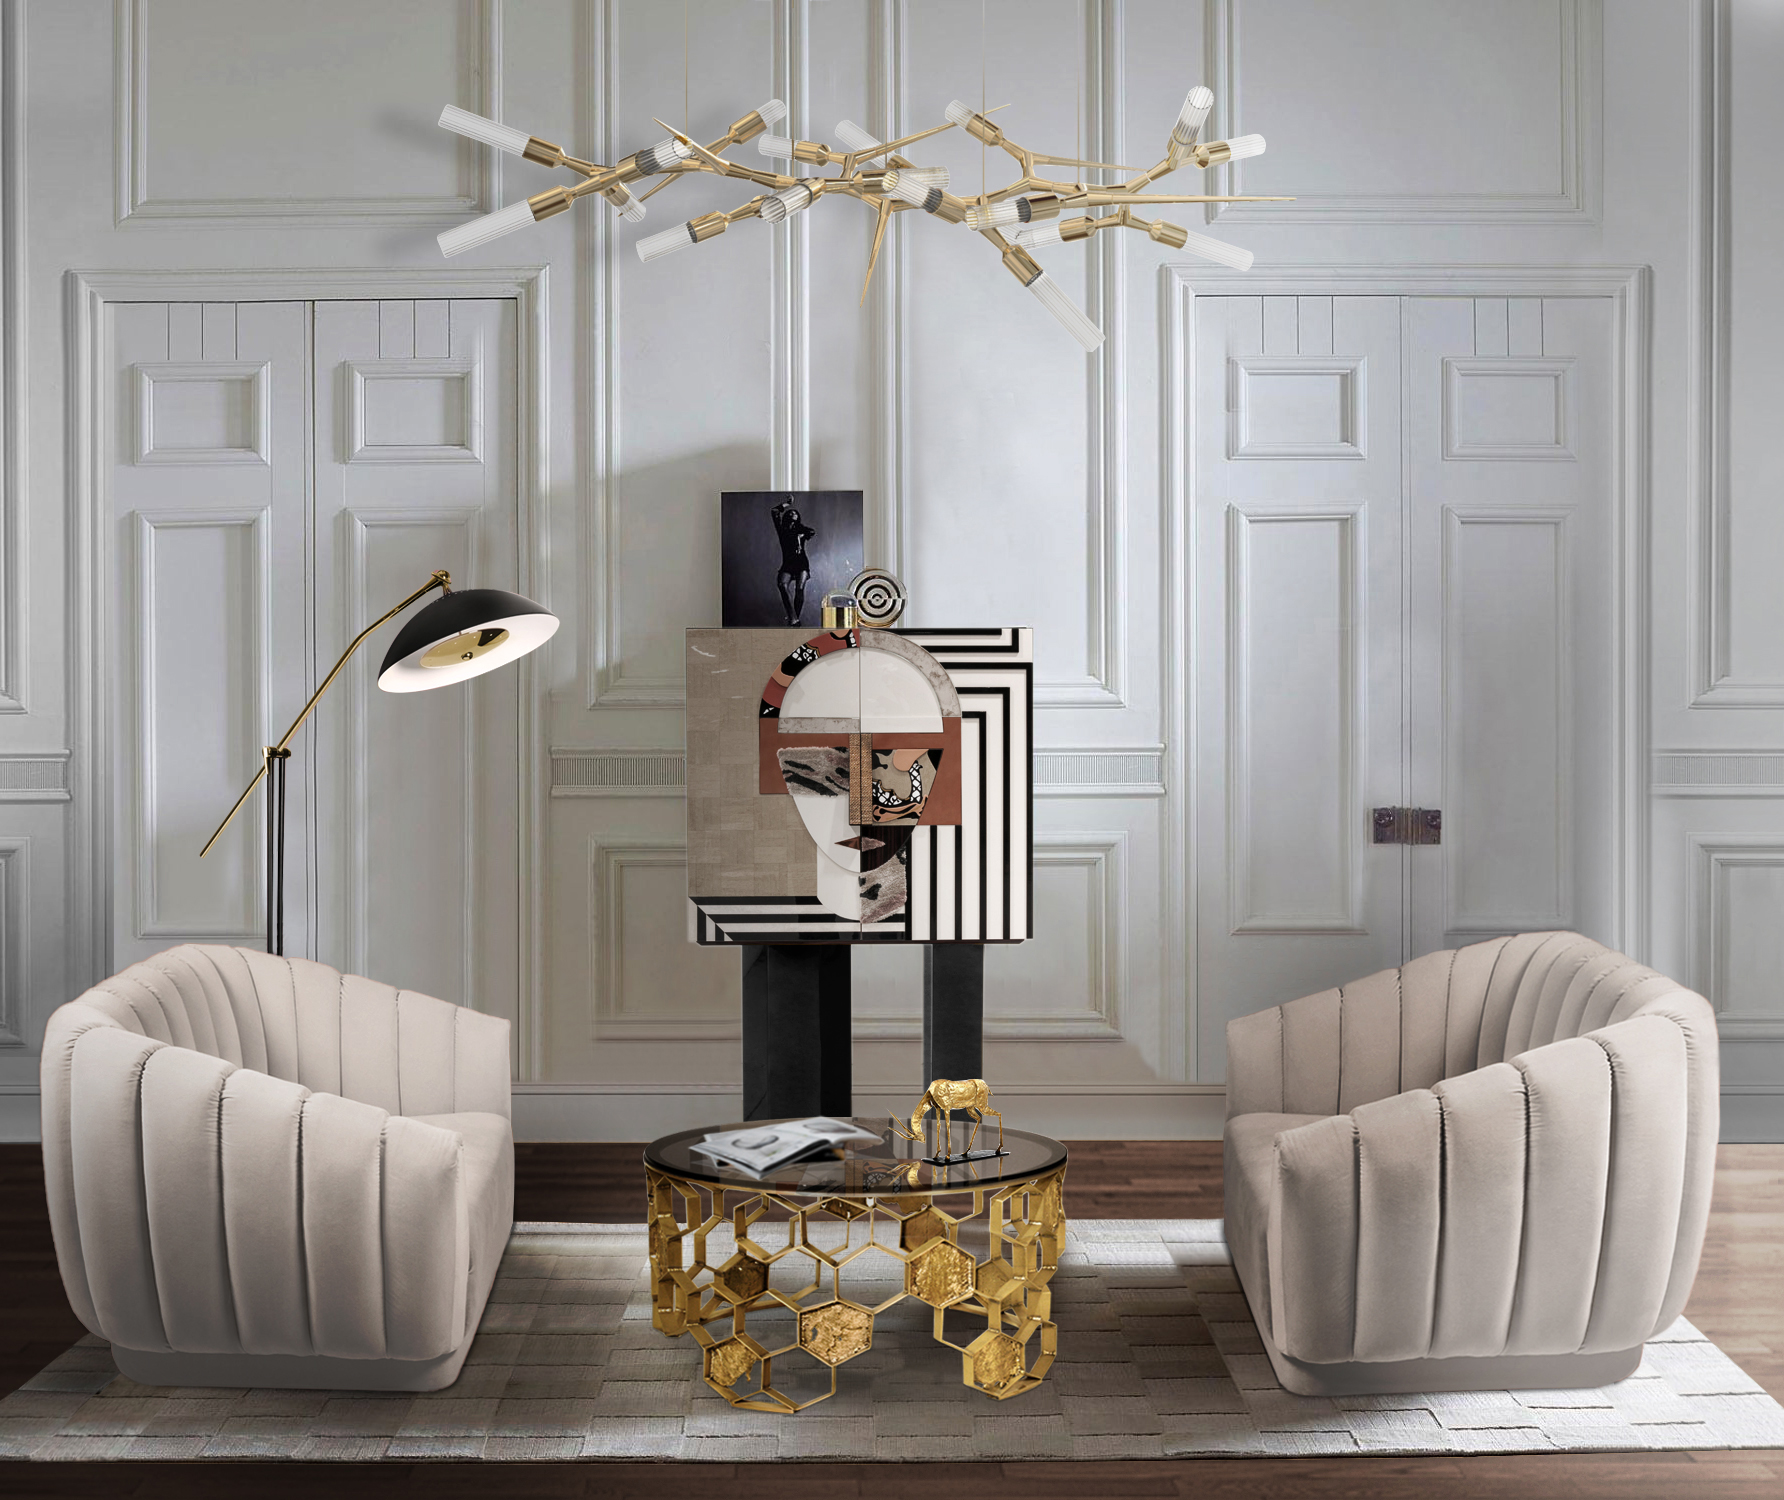 5 Fall Living Room Design Trends You Have to Check Before Rolling Up Your Sleeves for a Home Renovation! fall living room design trends 5 Fall Living Room Design Trends You Have to Check Before Rolling Up Your Sleeves for a Home Renovation! 3 4